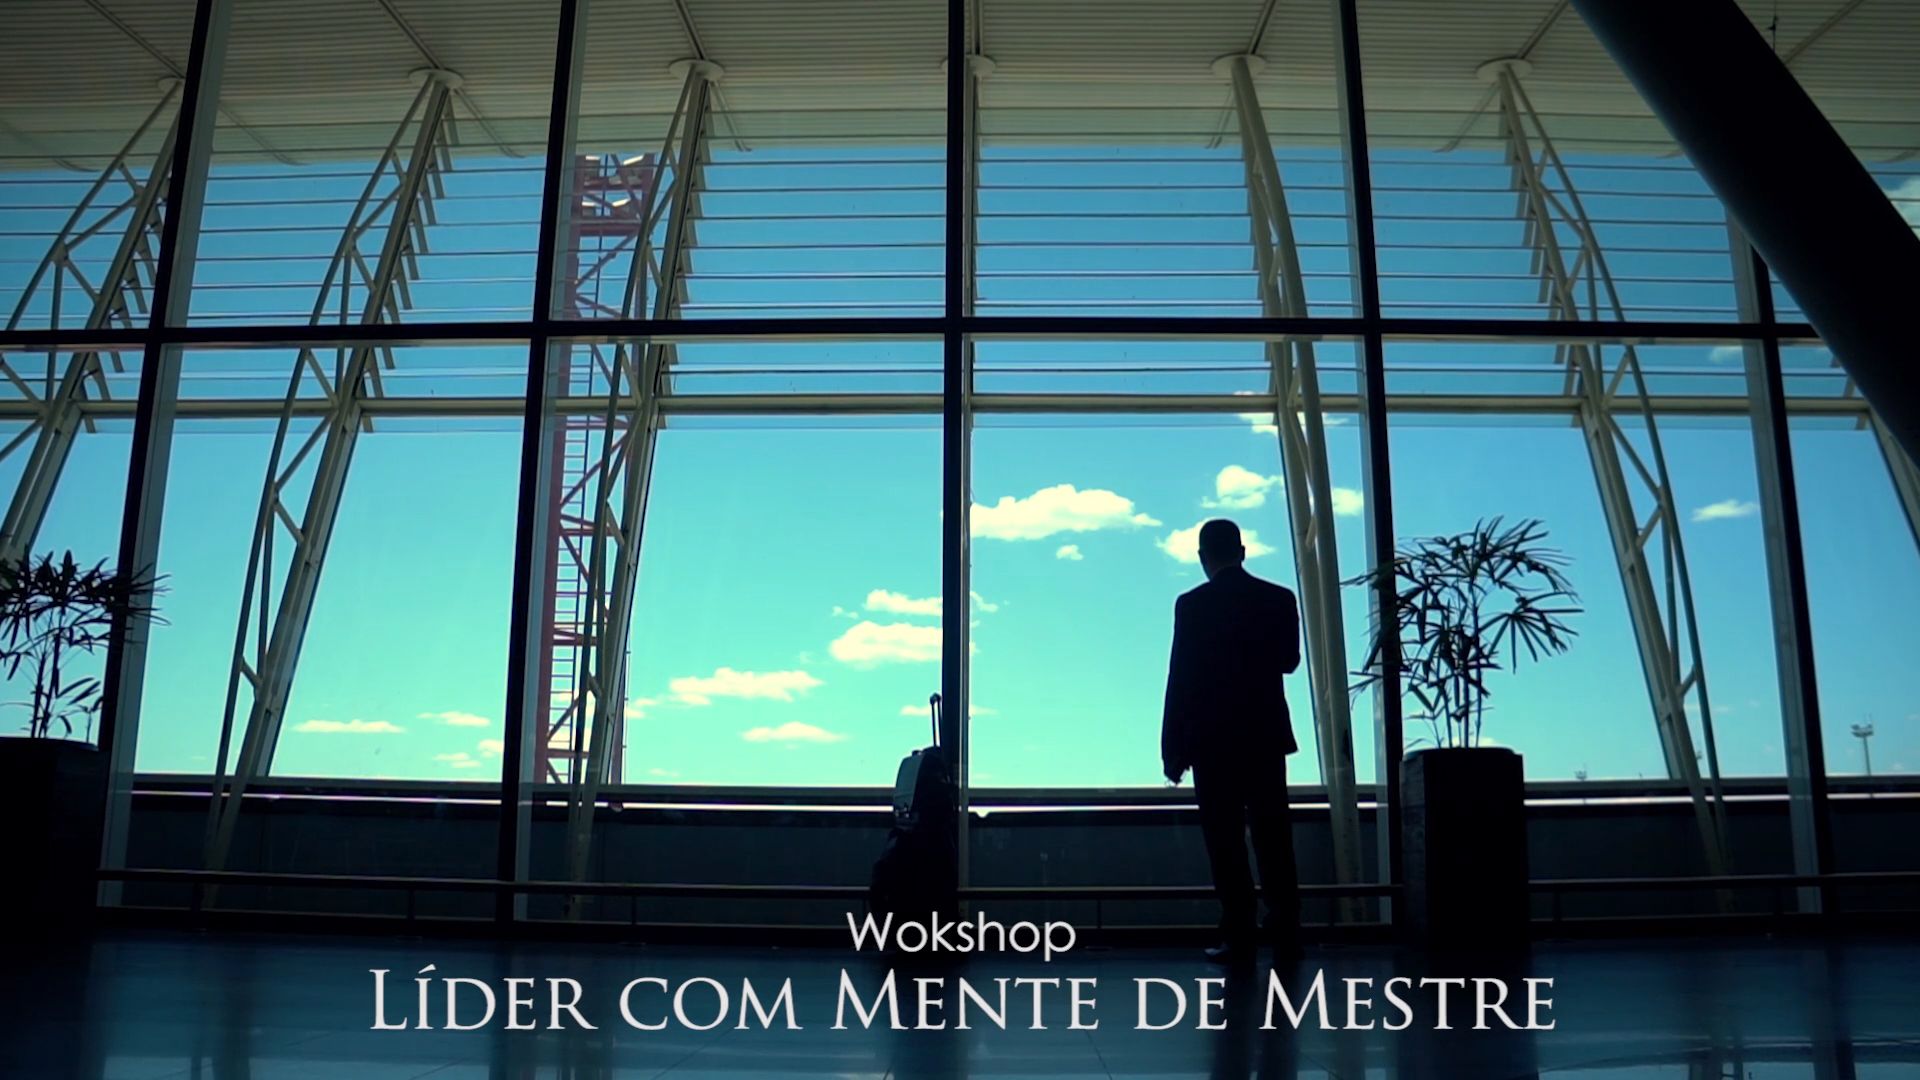 Workshop Líder com Mente de Mestre